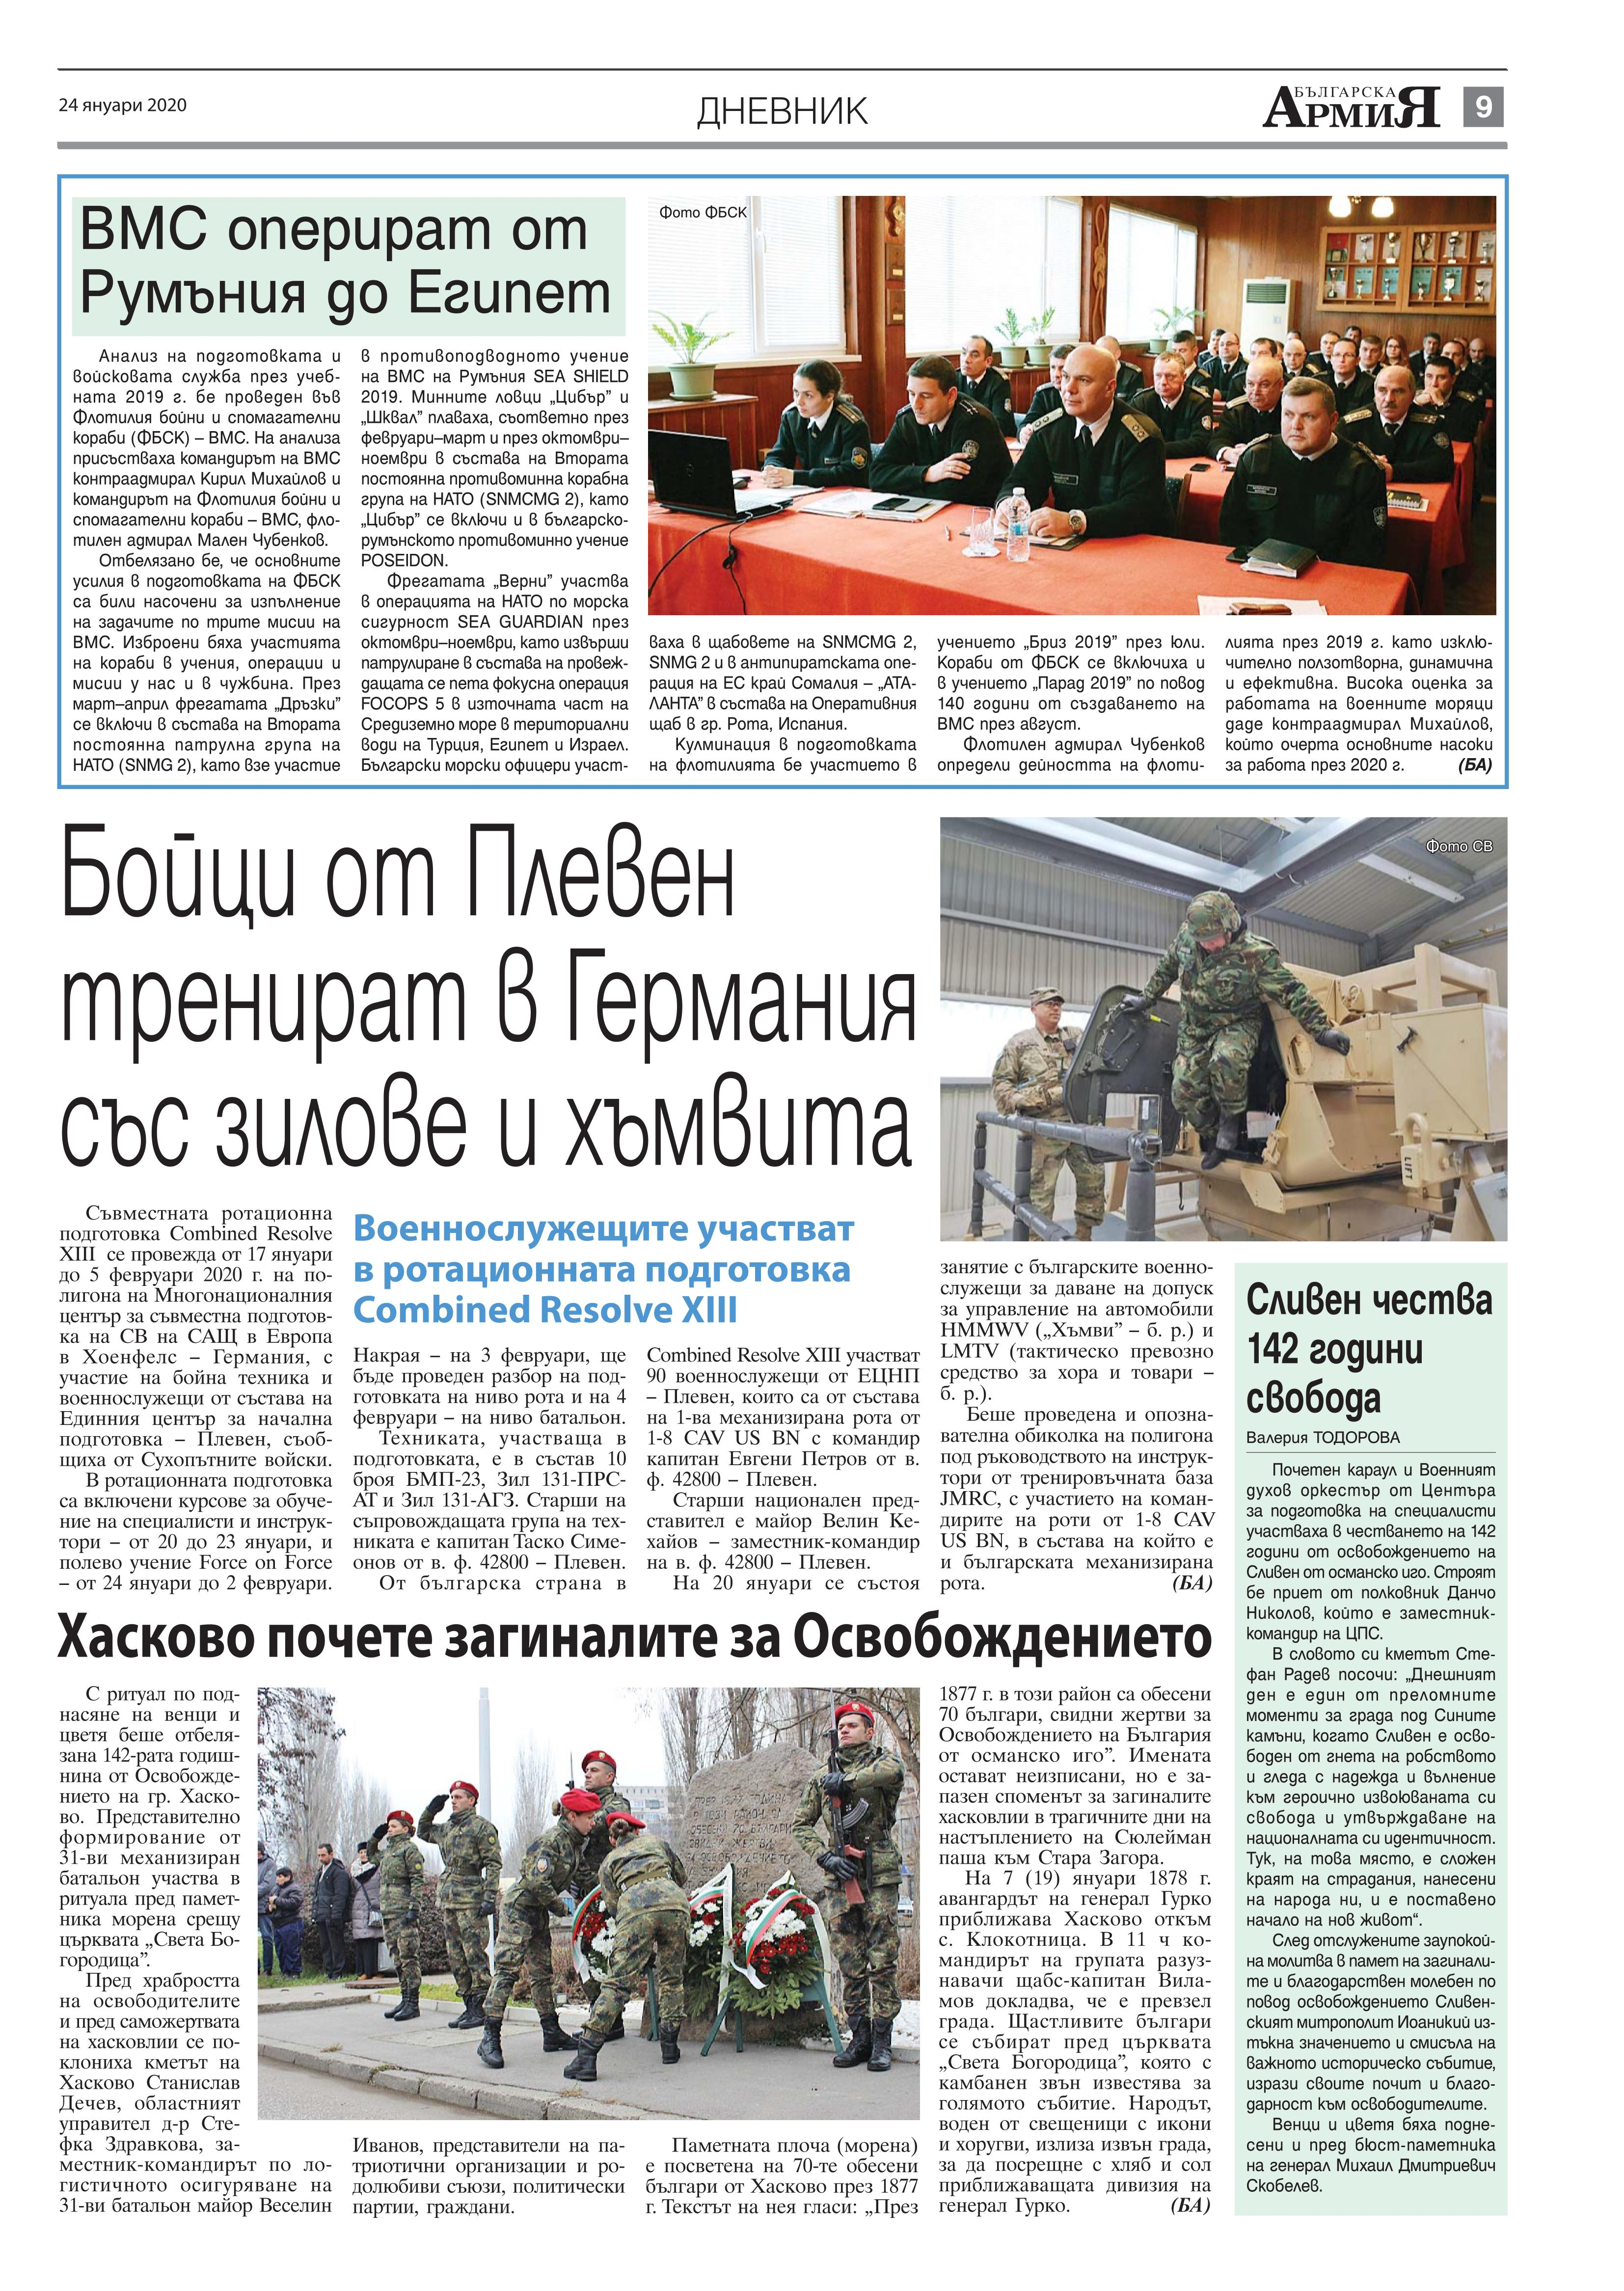 https://armymedia.bg/wp-content/uploads/2015/06/09.page1_-122.jpg